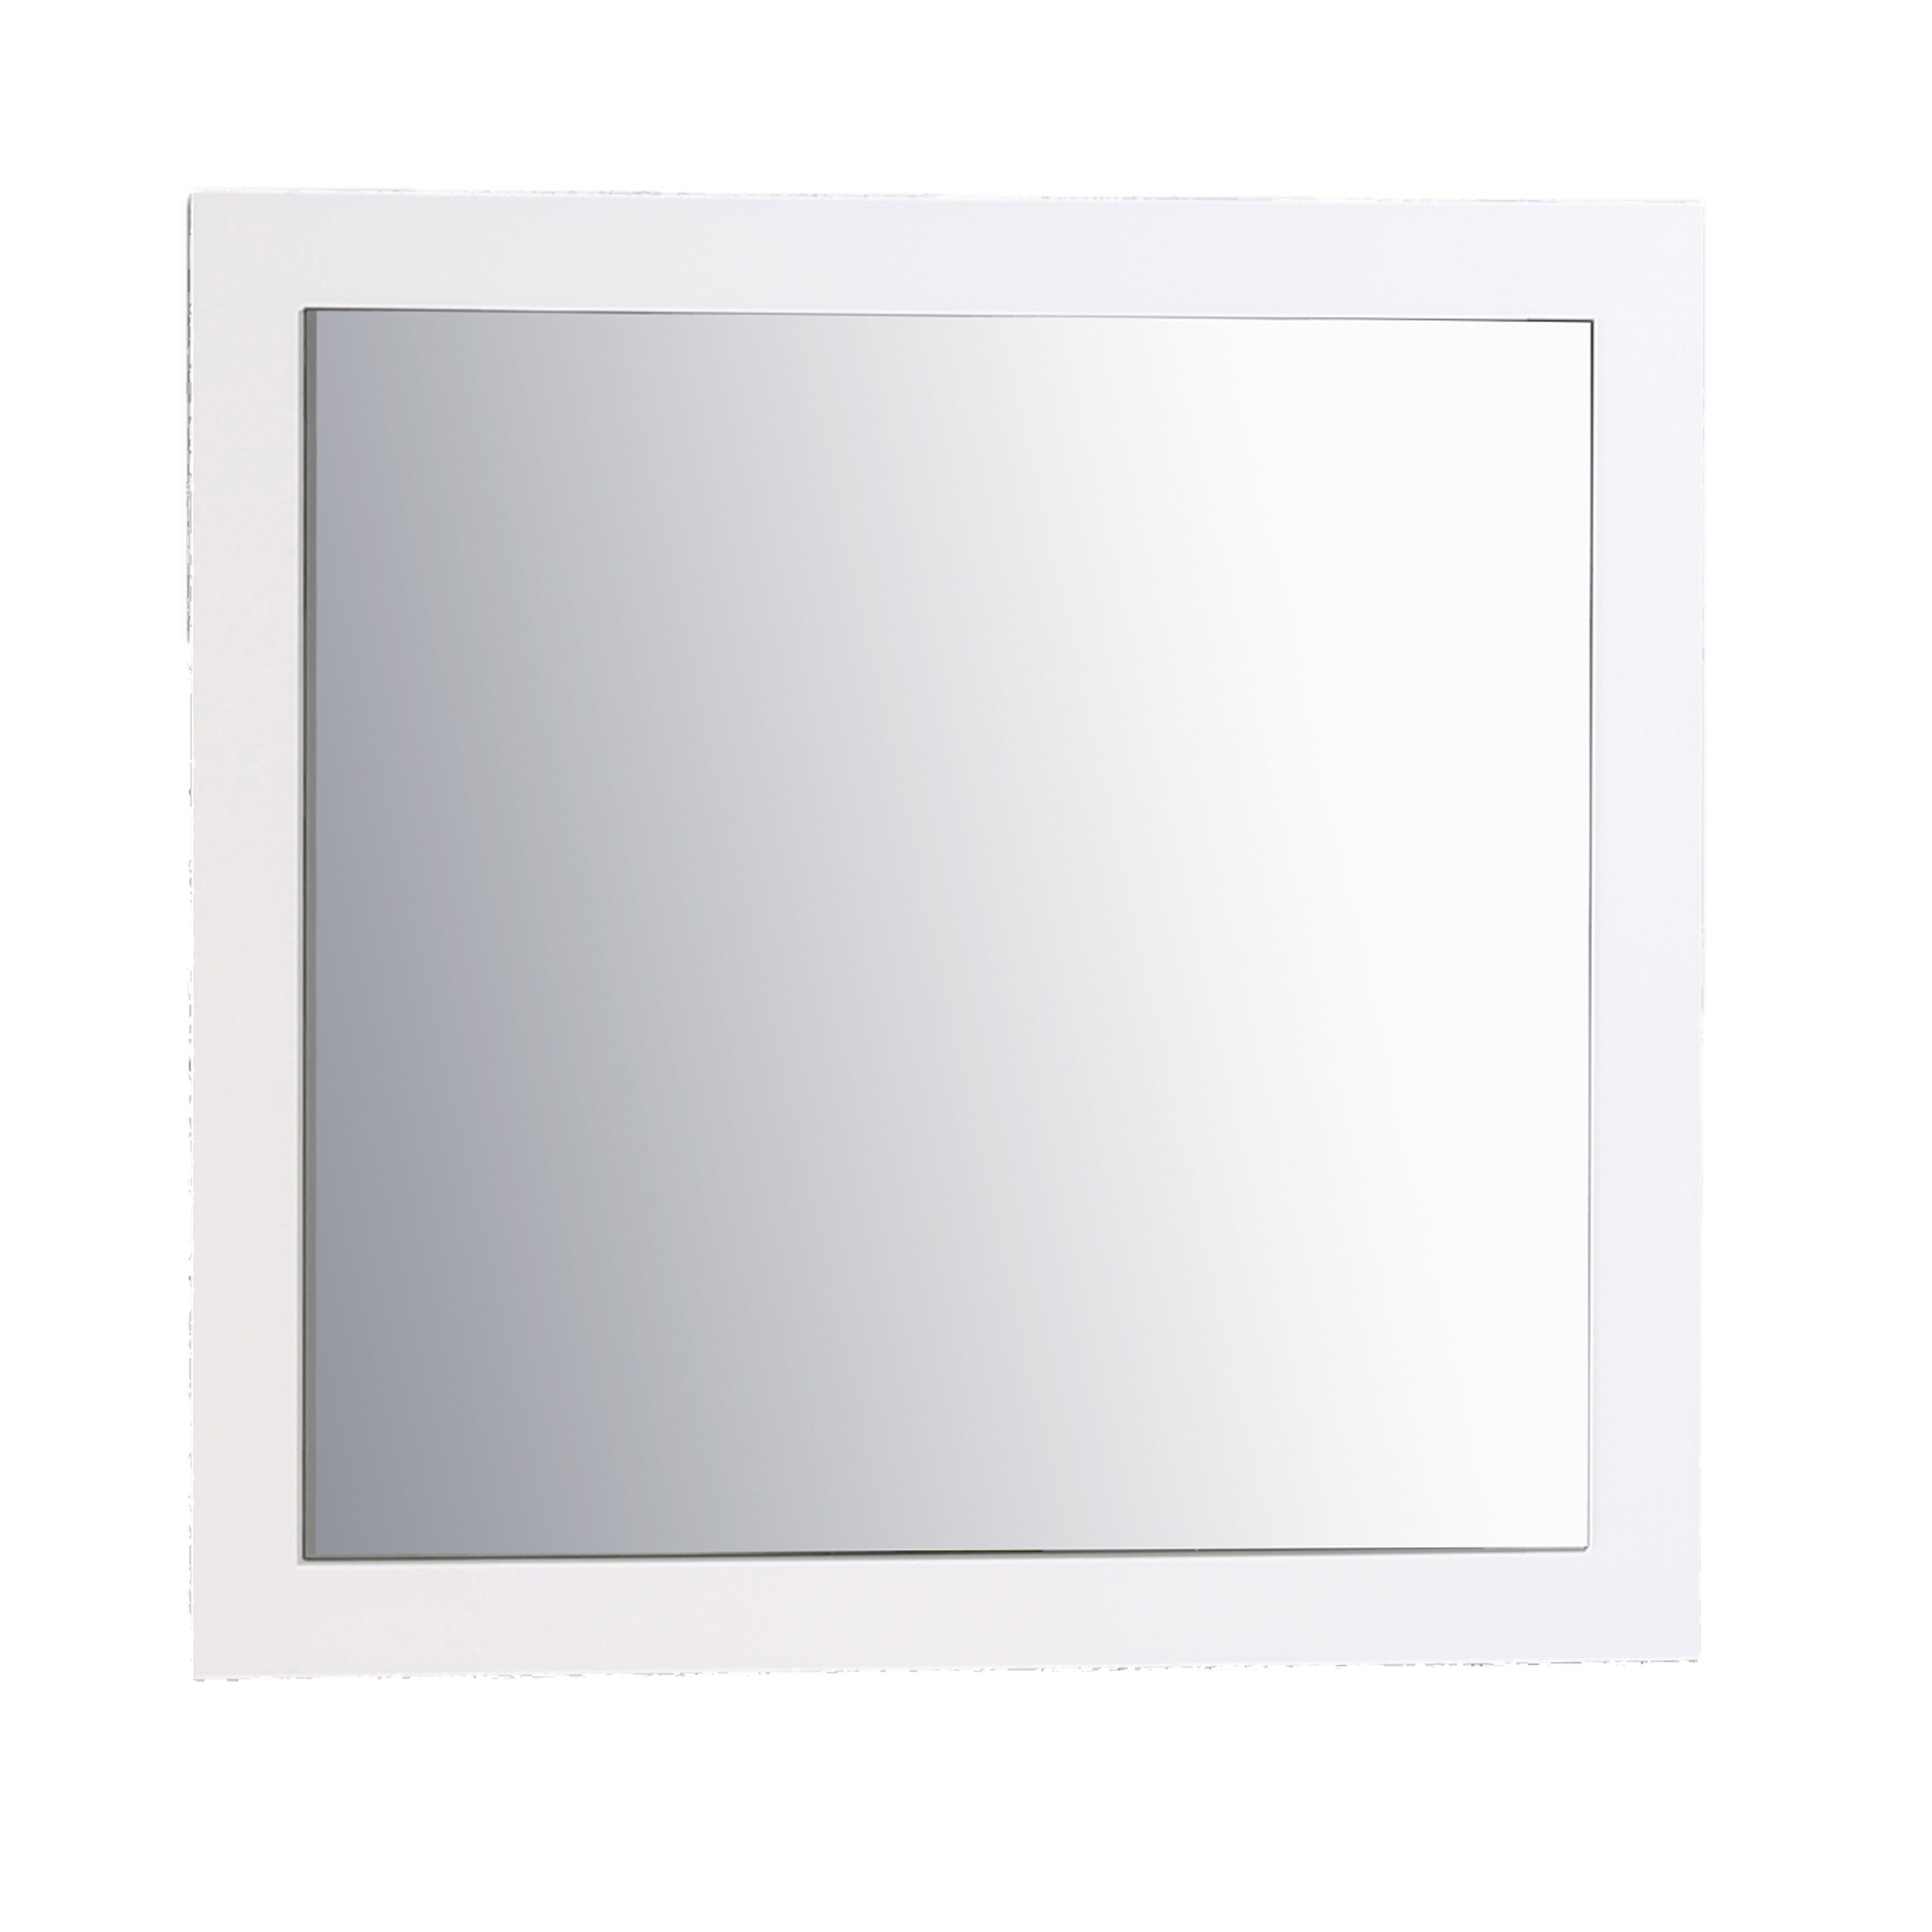 Eviva EVMR-30X30-GWH Sun 30'' Glossy White Mirror Combination, Gloss White by Eviva